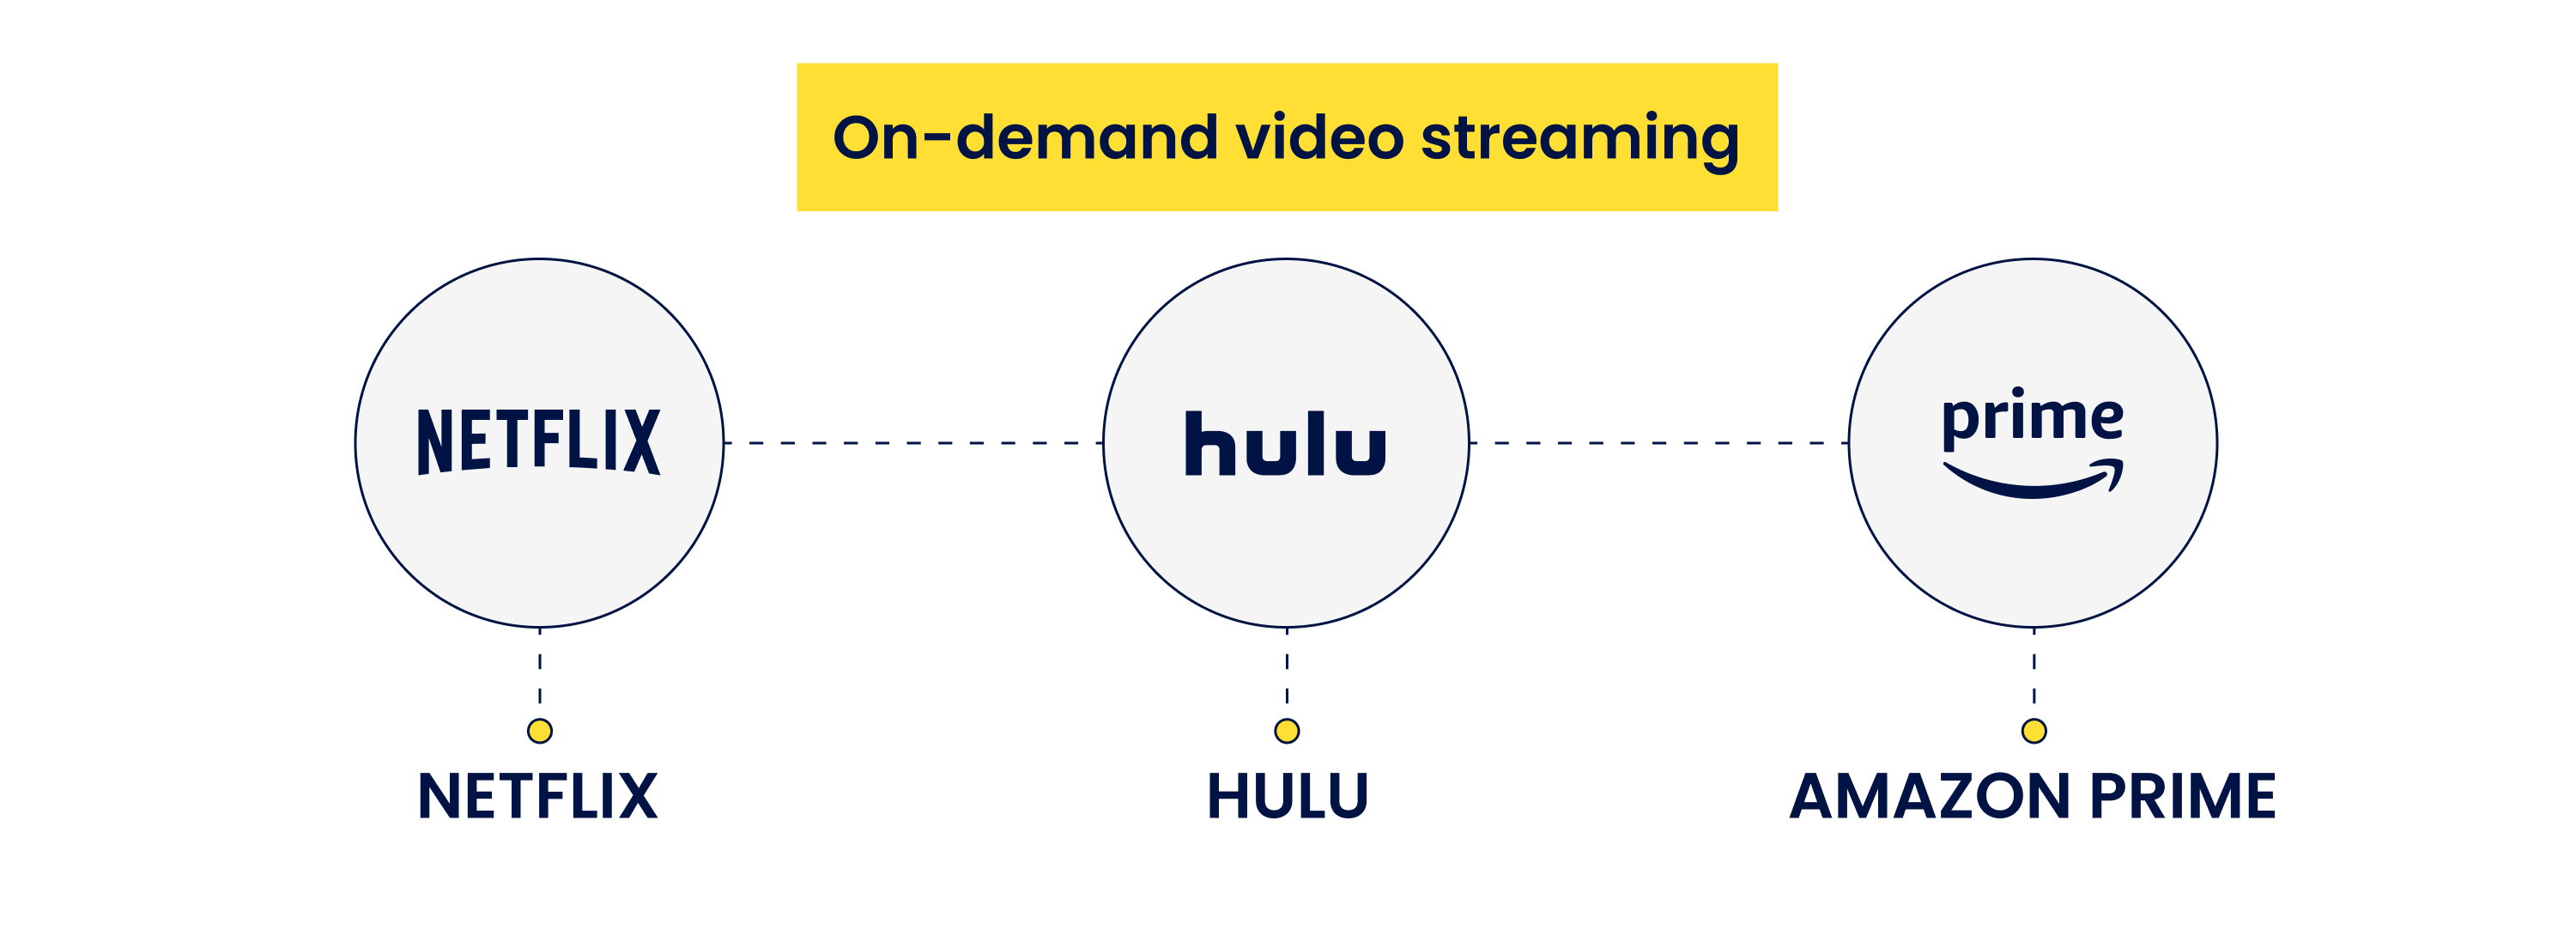 on-demand video streaming websites